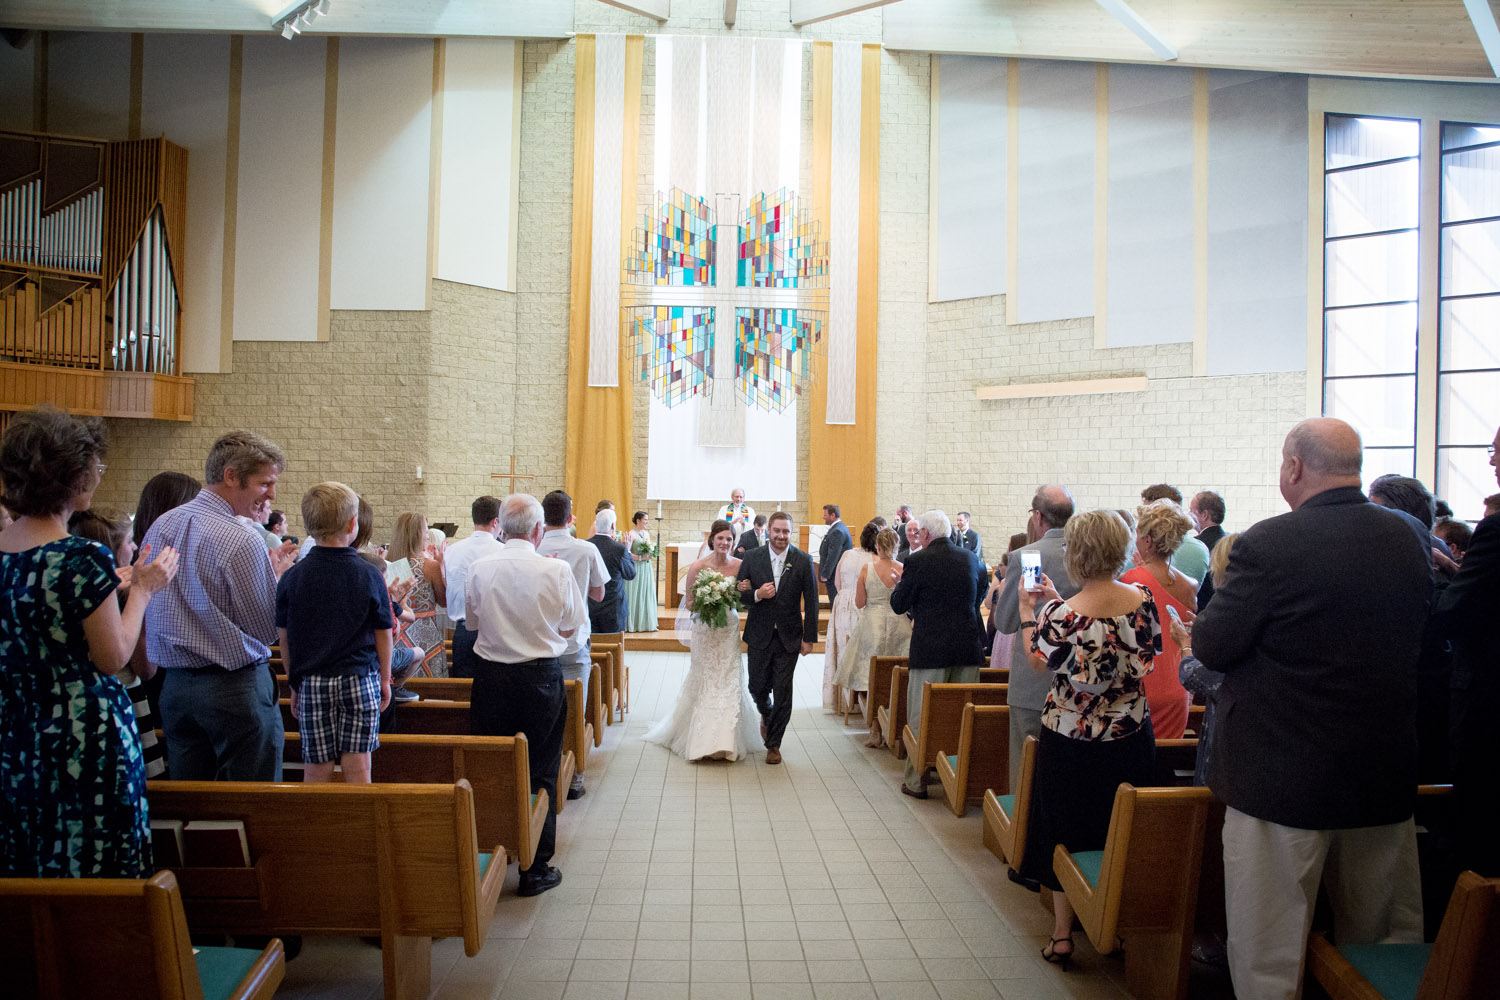 13-wedding-ceremony-church-husband-and-wife-mahonen-photography.jpg